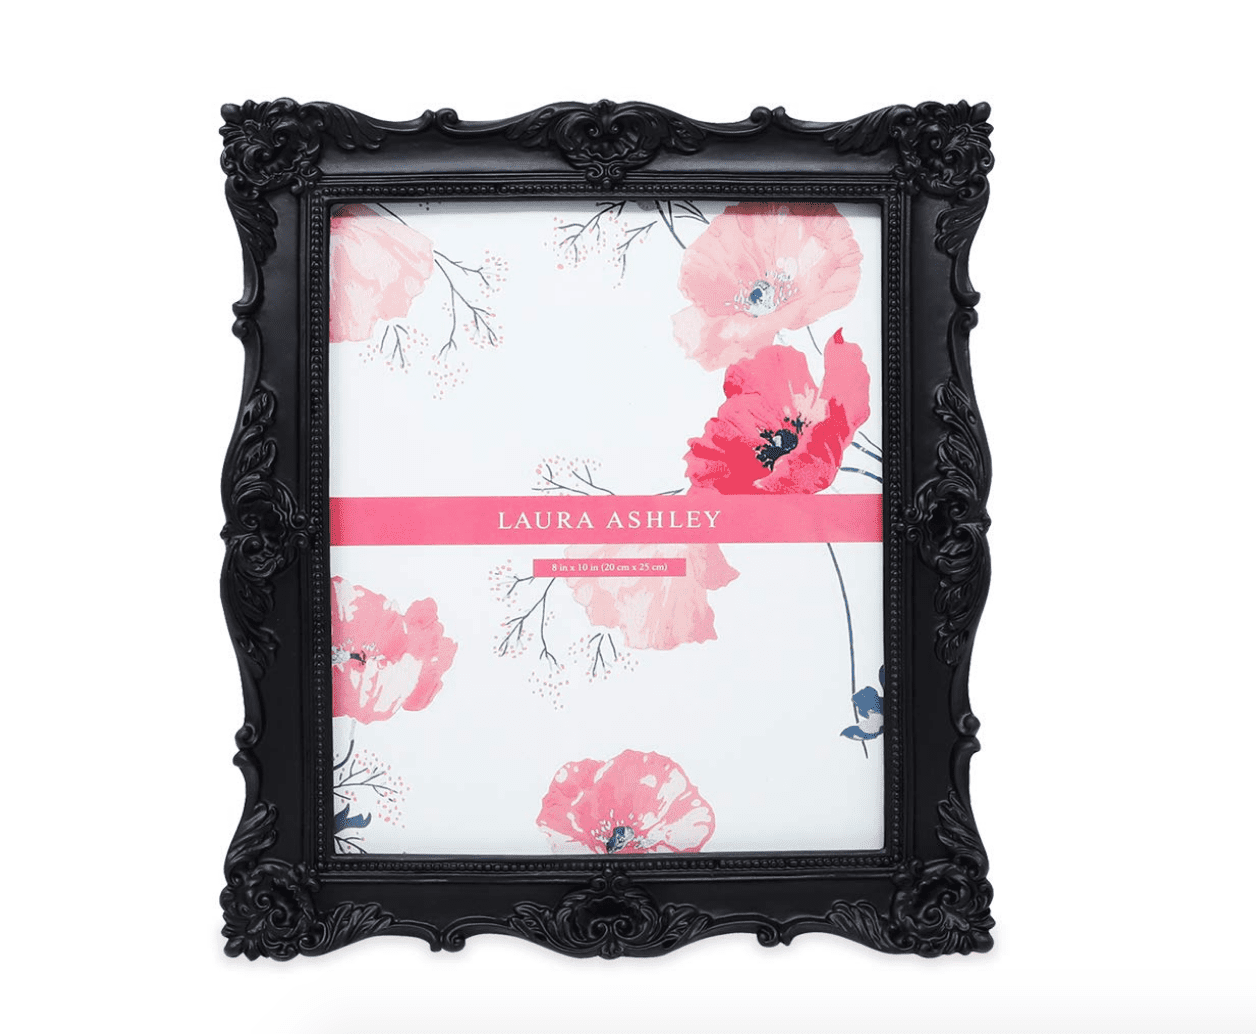 Black Ornate Textured Hand-Crafted Resin Picture Frame